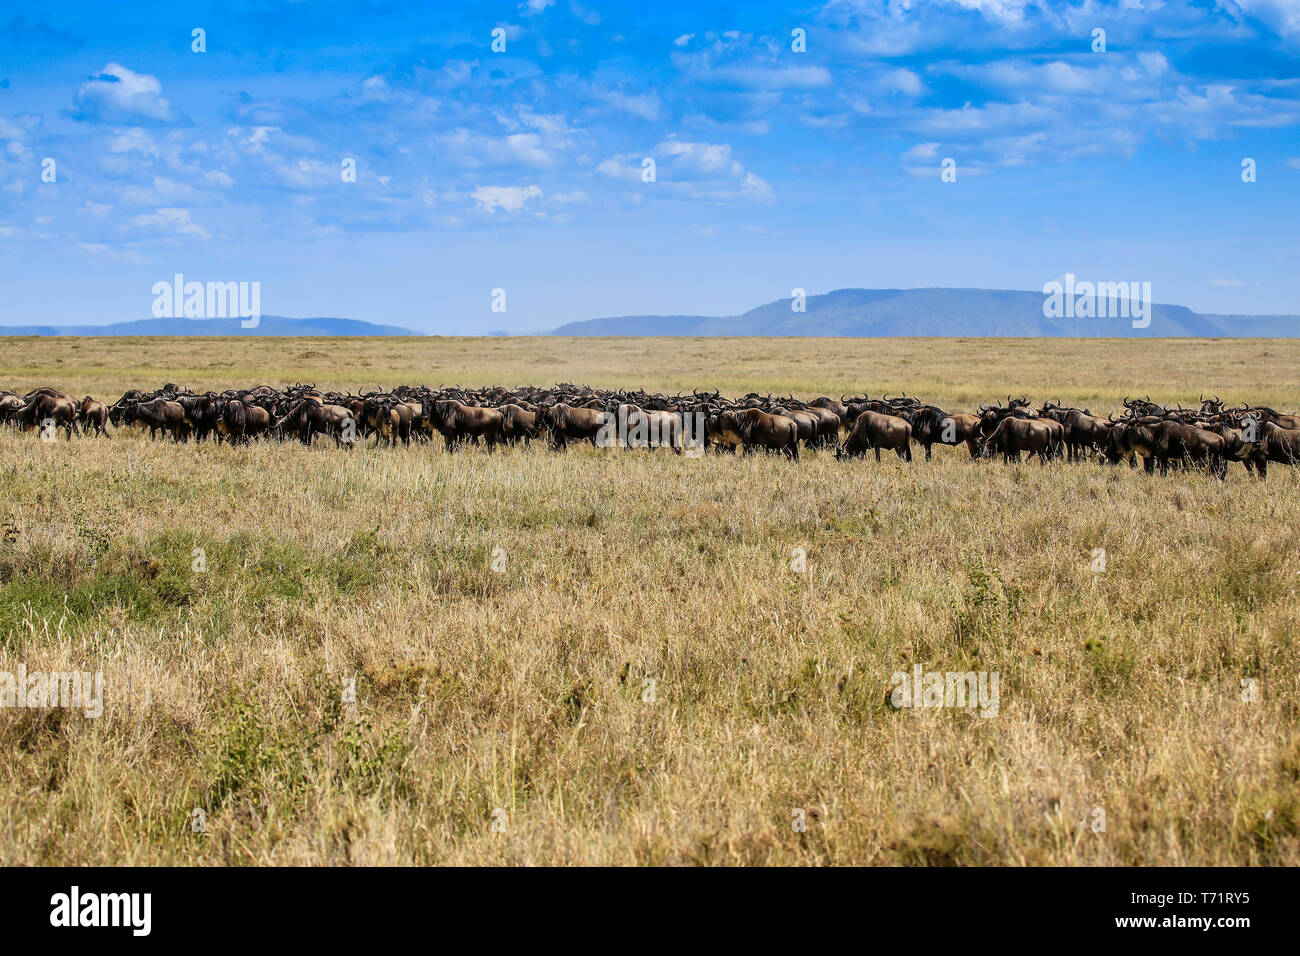 herd of wildebeast walking across dry plain and a mountain in the far distance, with room for text - Stock Image